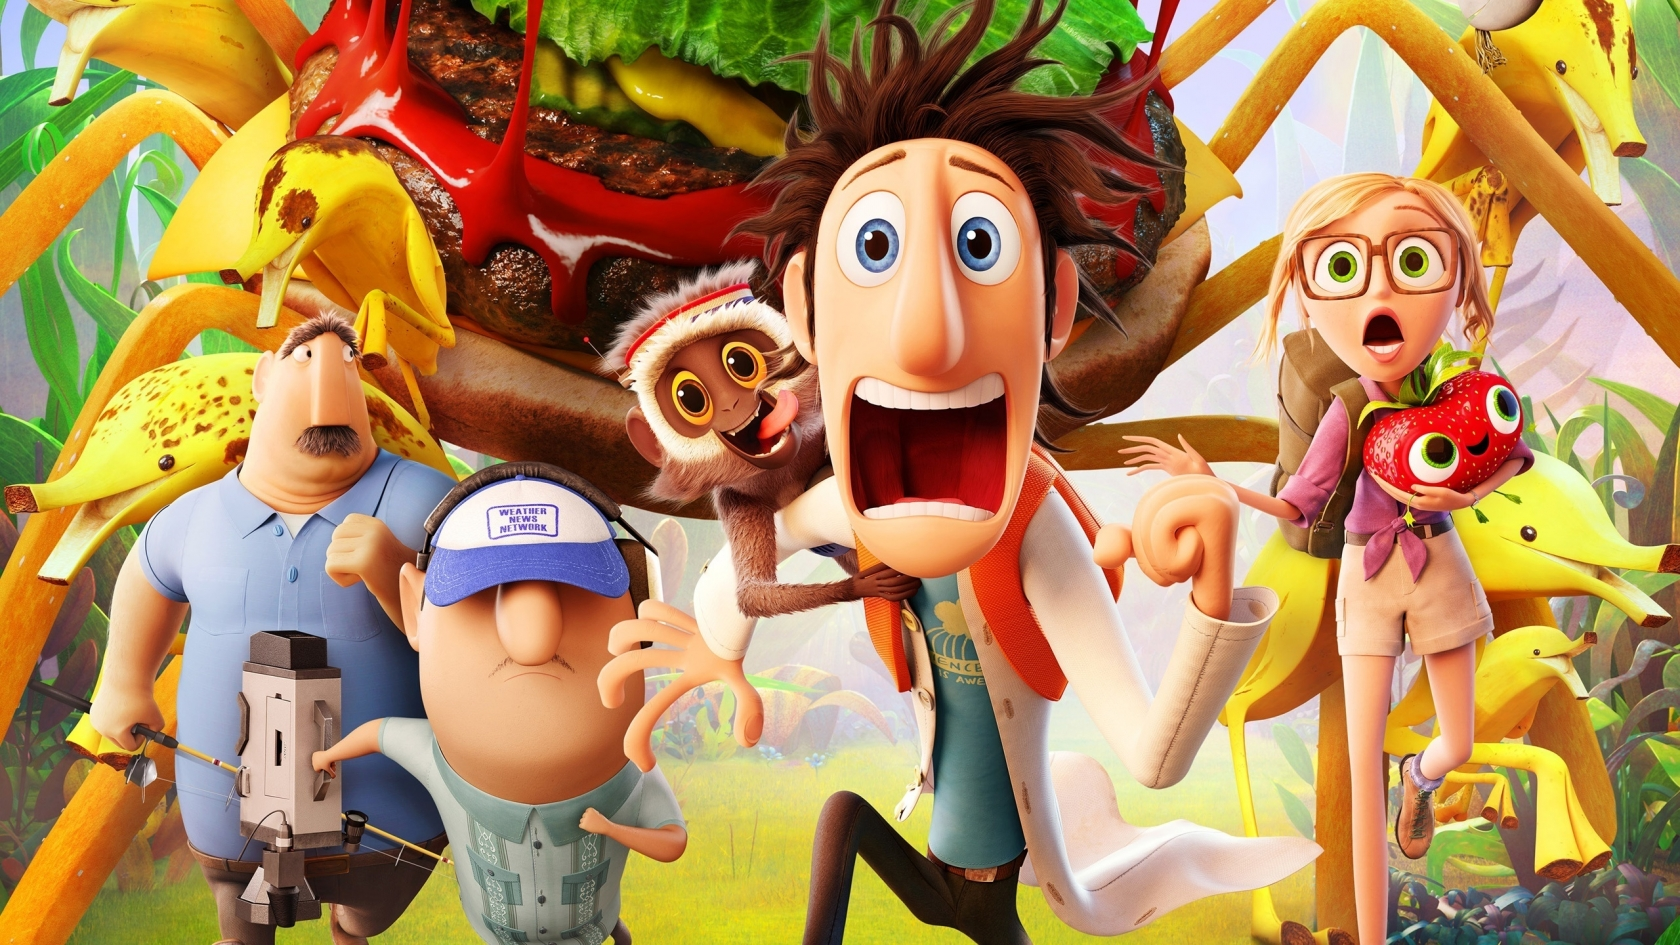 Cloudy with a Chance of Meatballs 2 Cast for 1680 x 945 HDTV resolution